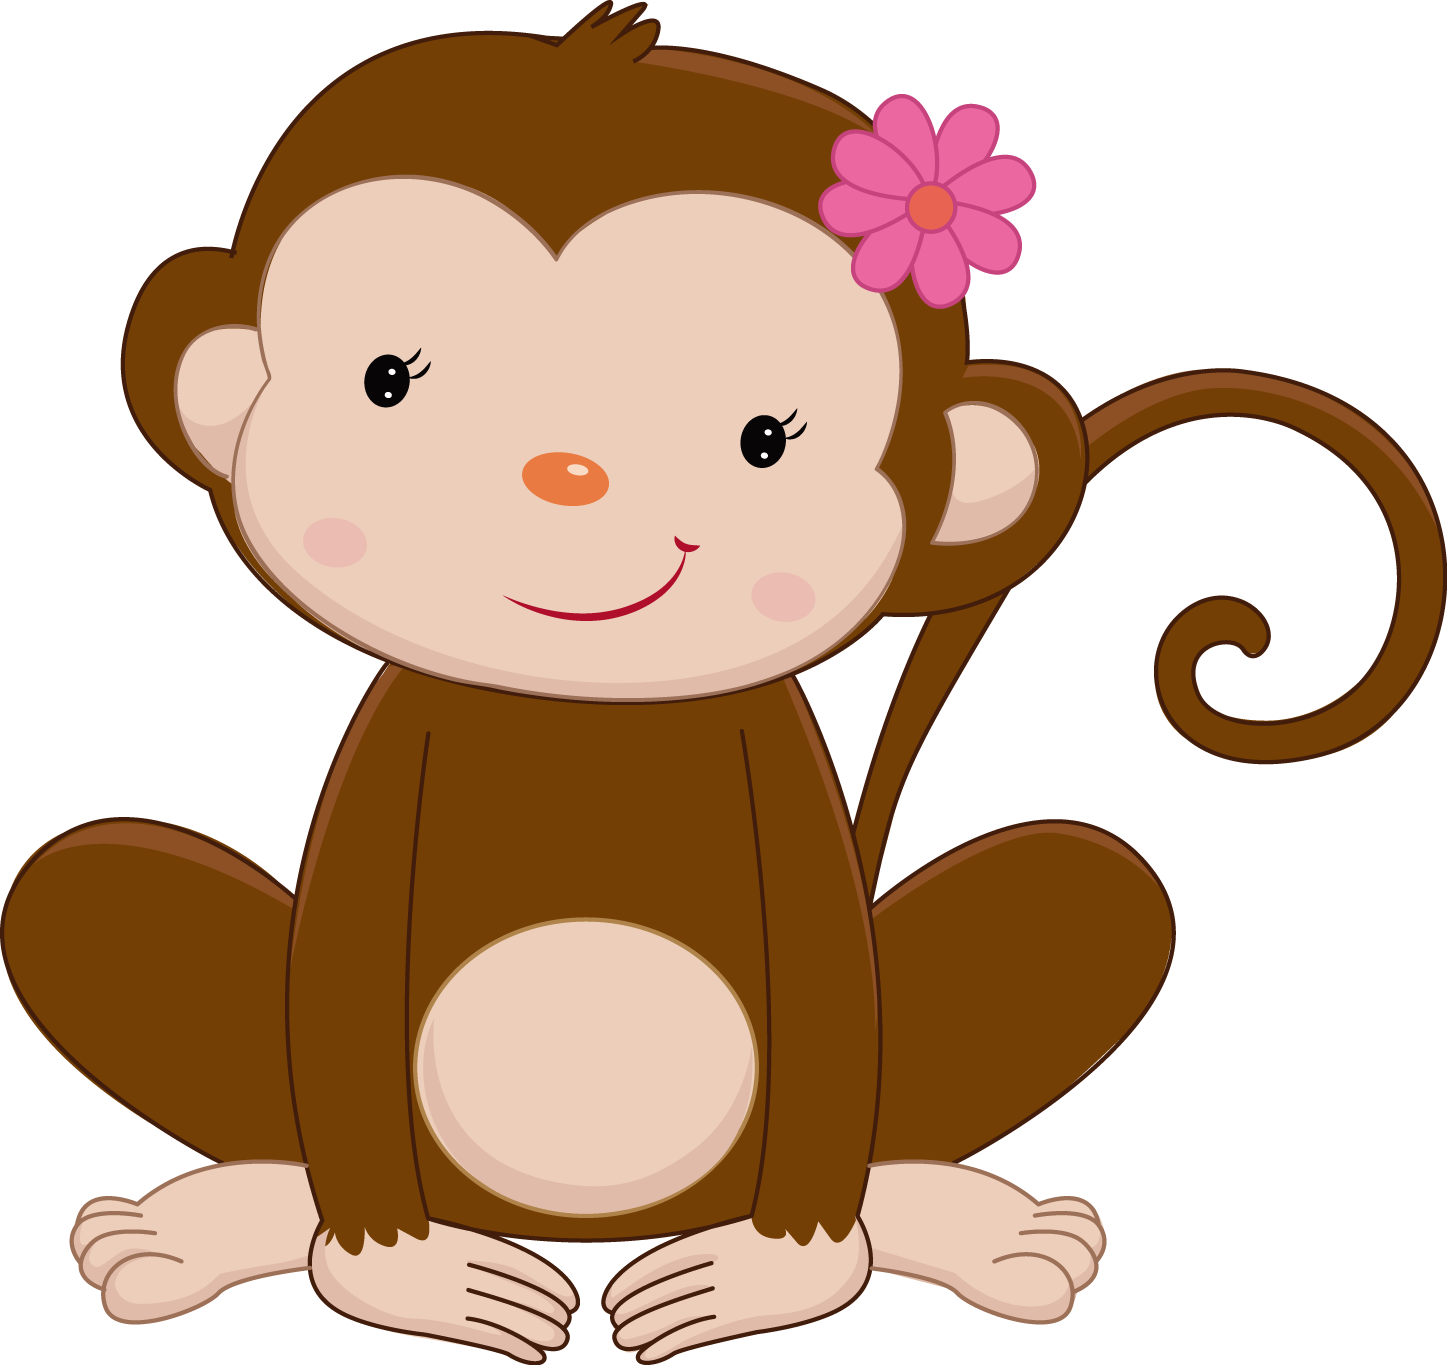 Monkey reading a book clipart banner black and white stock Pretty Pink Girly Jungle Animals - Pretty Pink Girly Jungle ... banner black and white stock